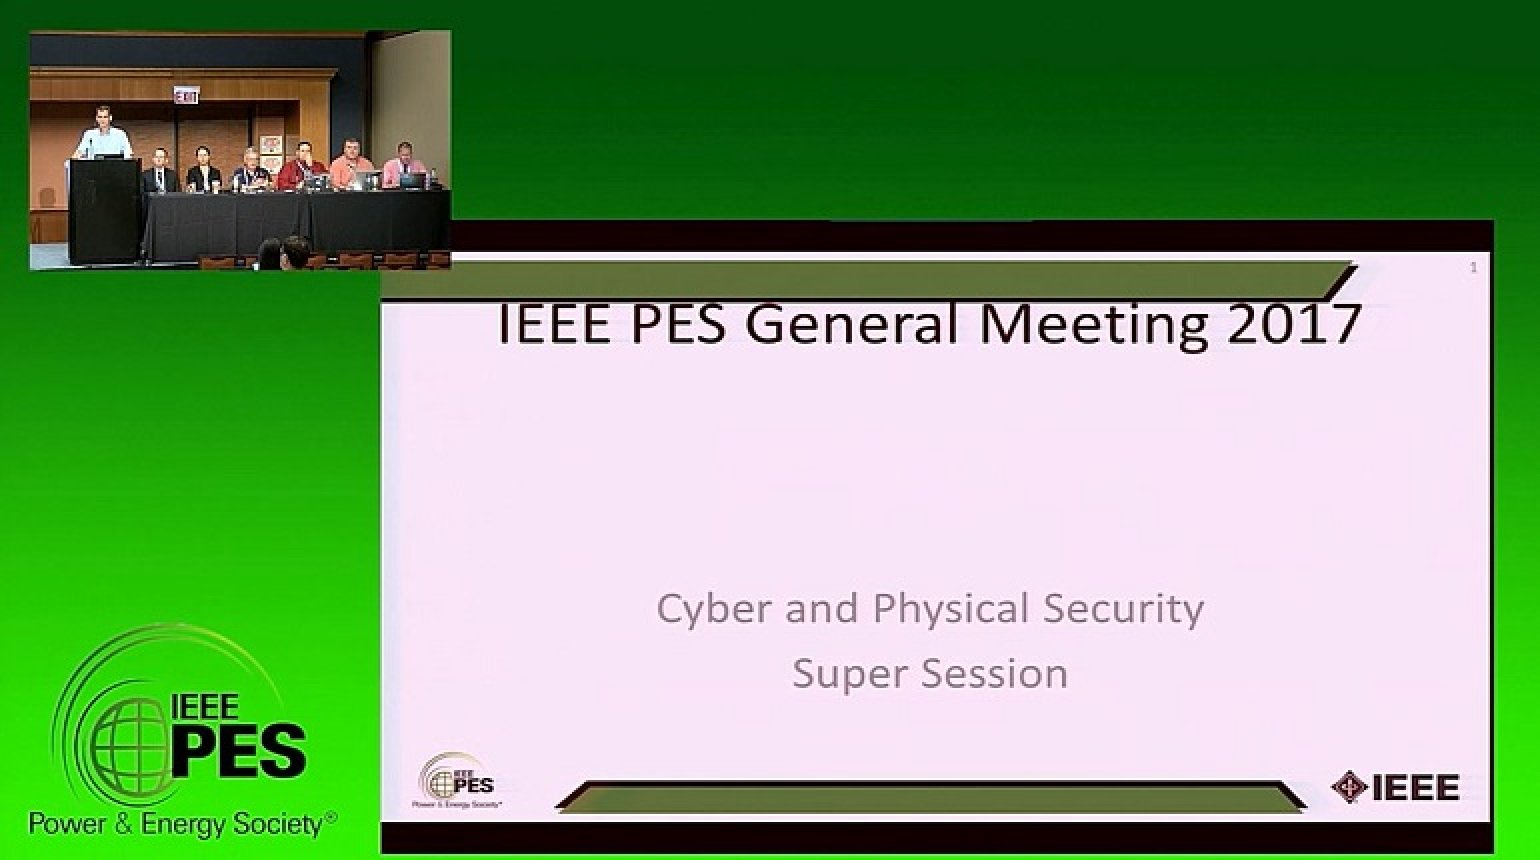 PES GM 2017 - Cyber and Physical Security Super Session